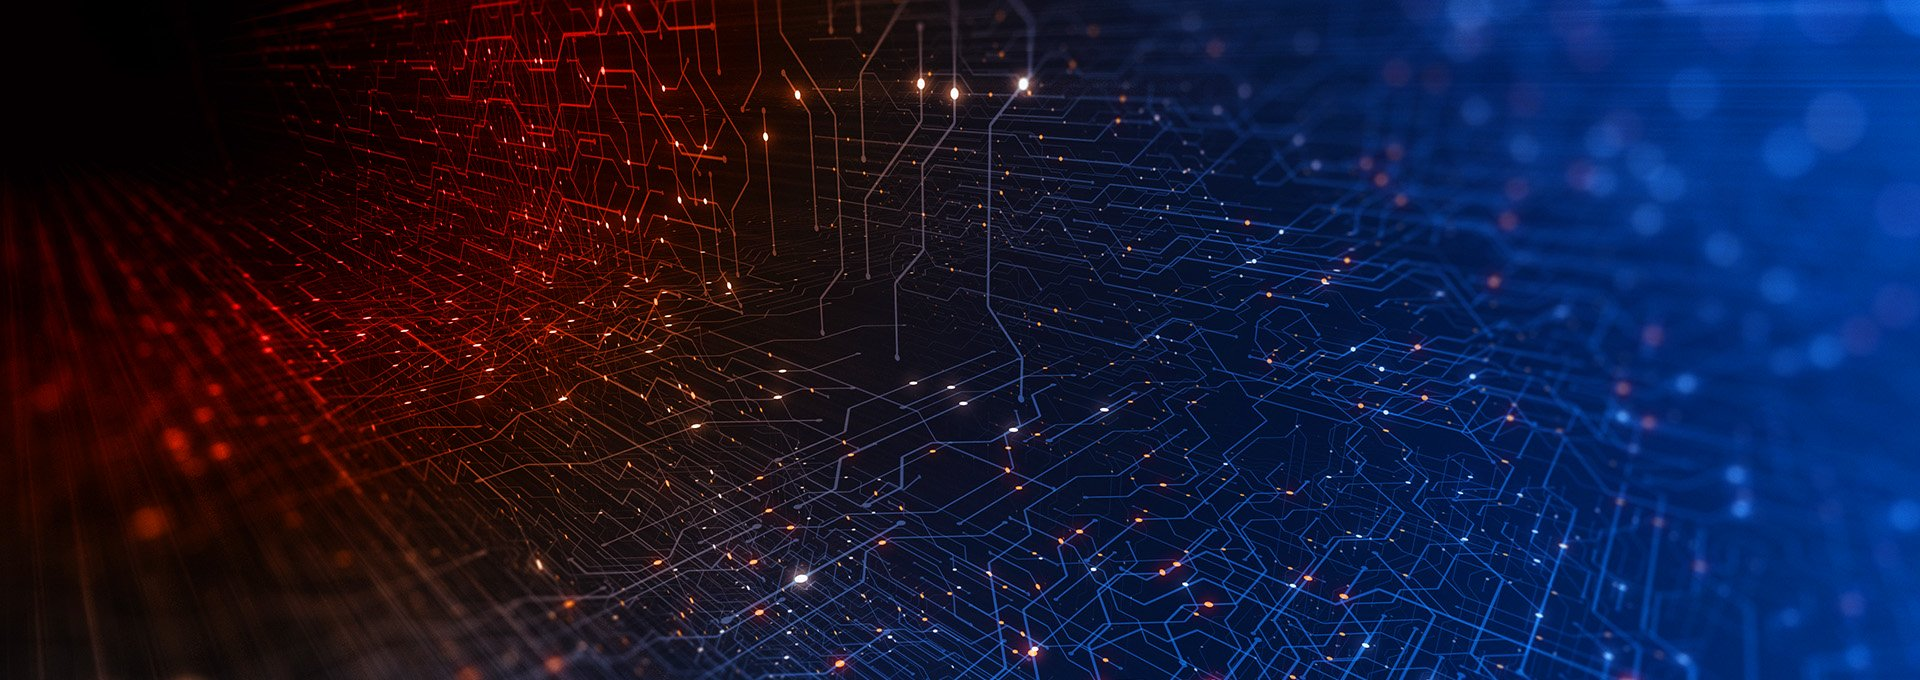 A network of connected dots illuminated in red and blue symbolizing the digital world of our Oasisnxt Fitting Software.